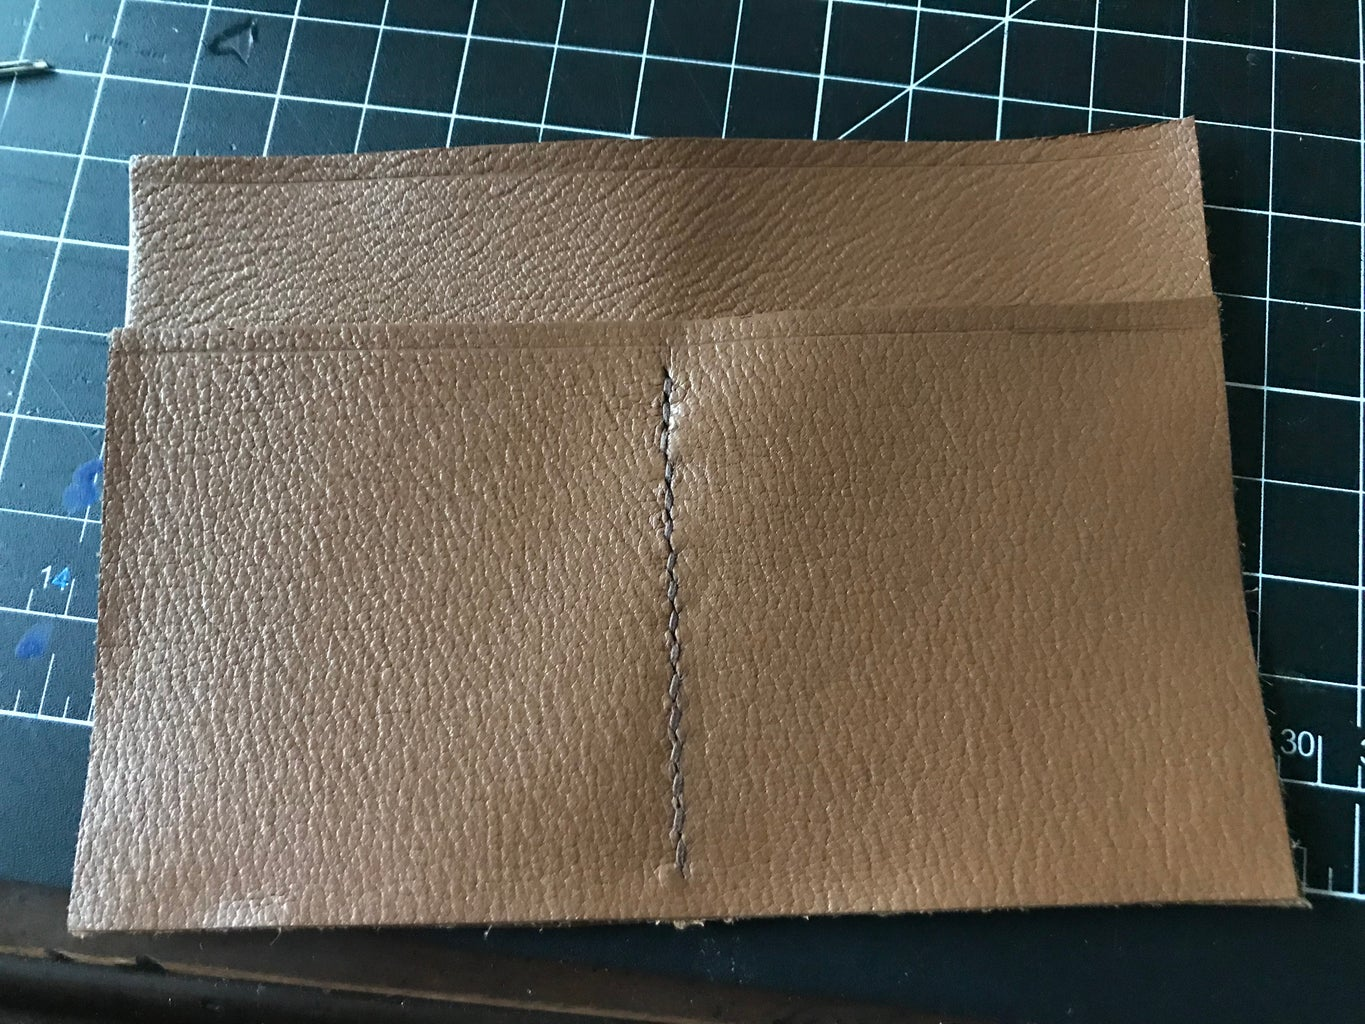 Stitch the Cardholder to the Lower Card Holder